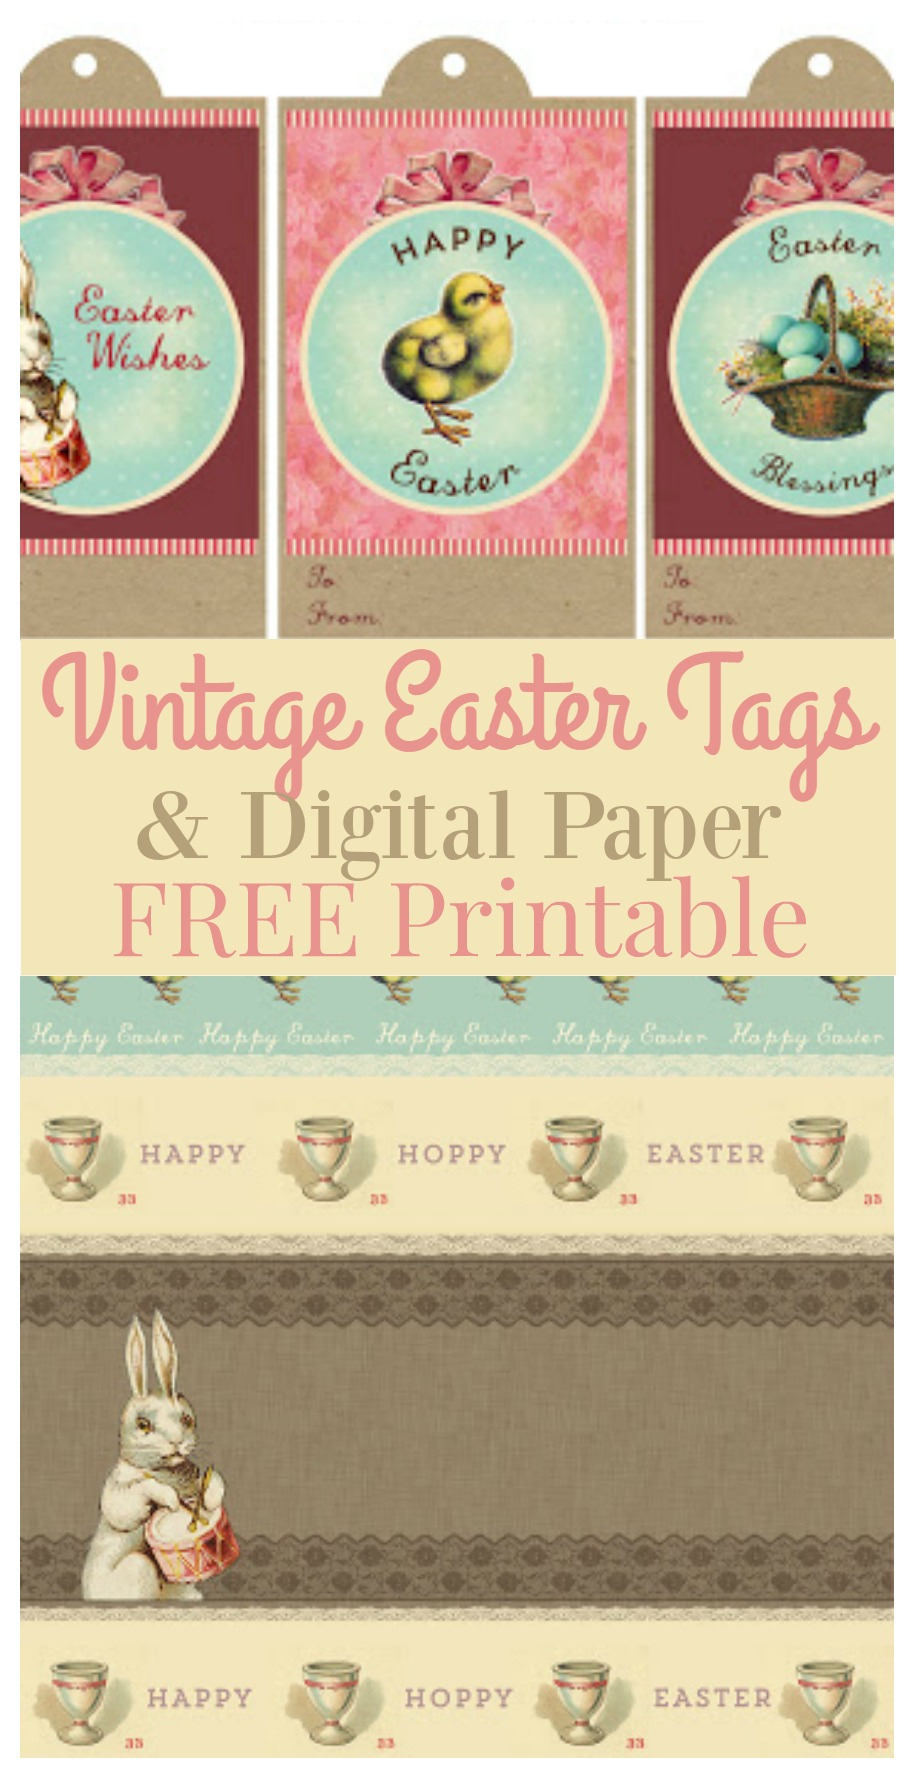 Printable Vintage Easter Gift Tags & Digital Paper - The Graphics Fairy - Free Printable Vintage Easter Images